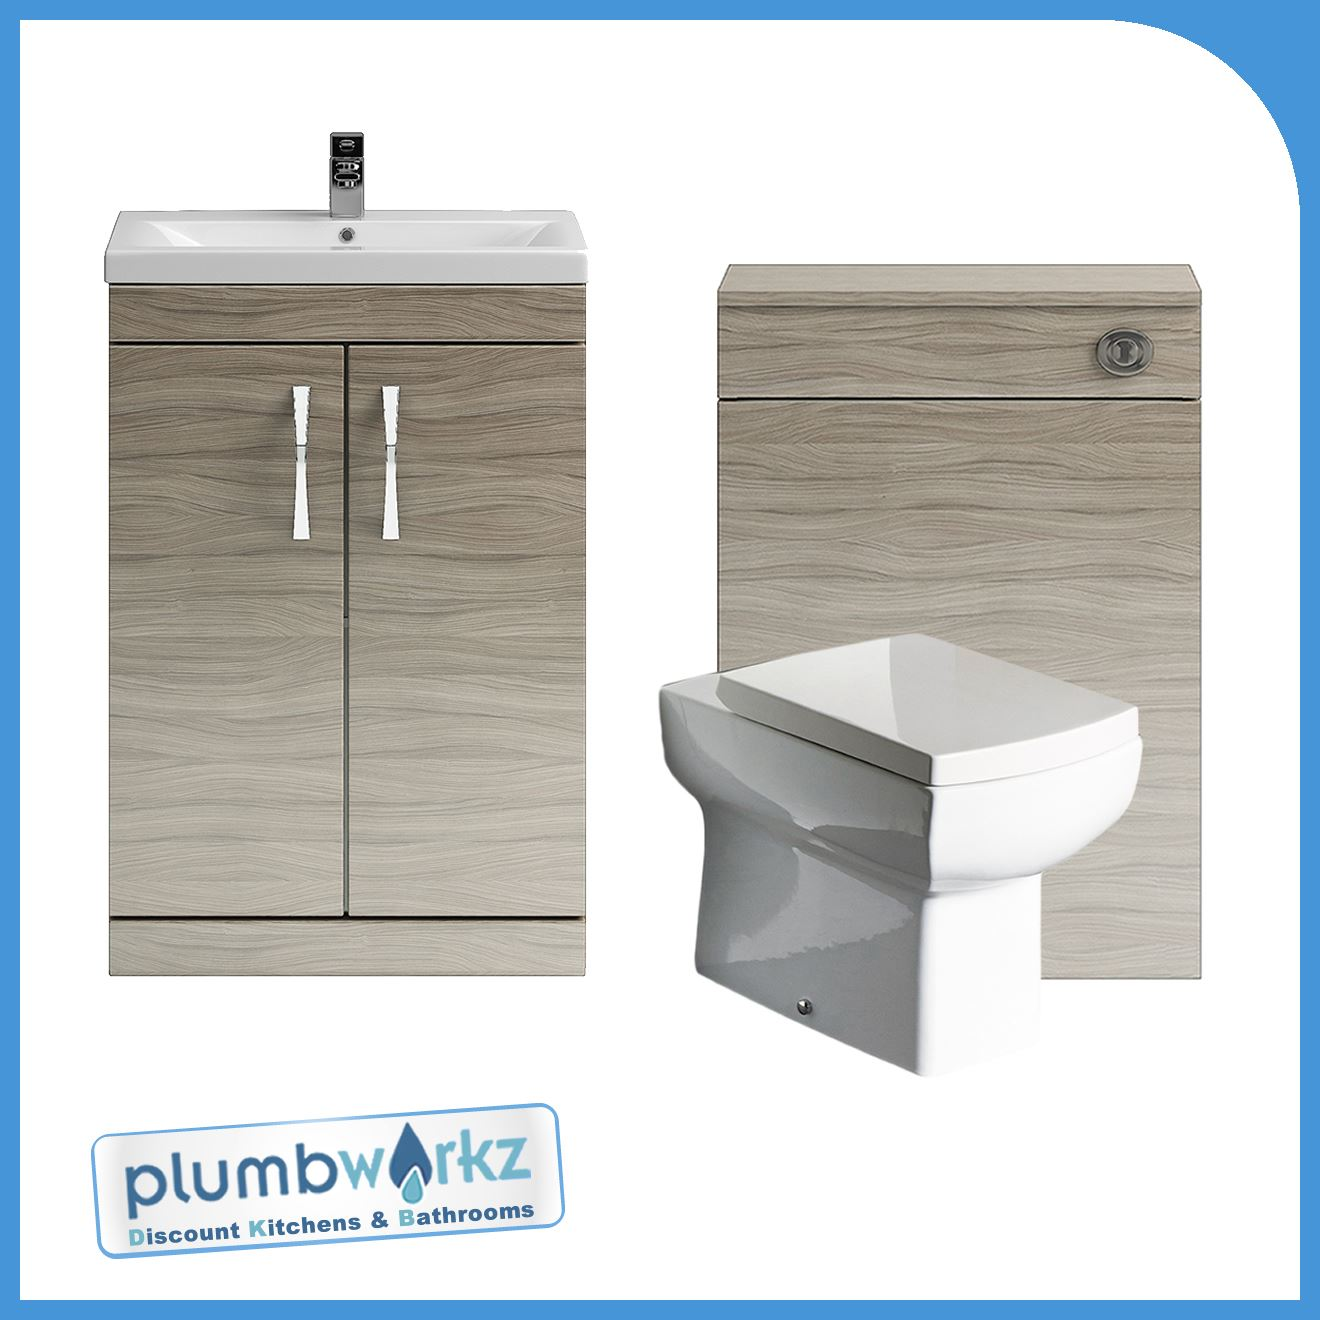 bathroom furniture driftwood vanity unit cabinet toilet basin btw toilet wc unit ebay. Black Bedroom Furniture Sets. Home Design Ideas